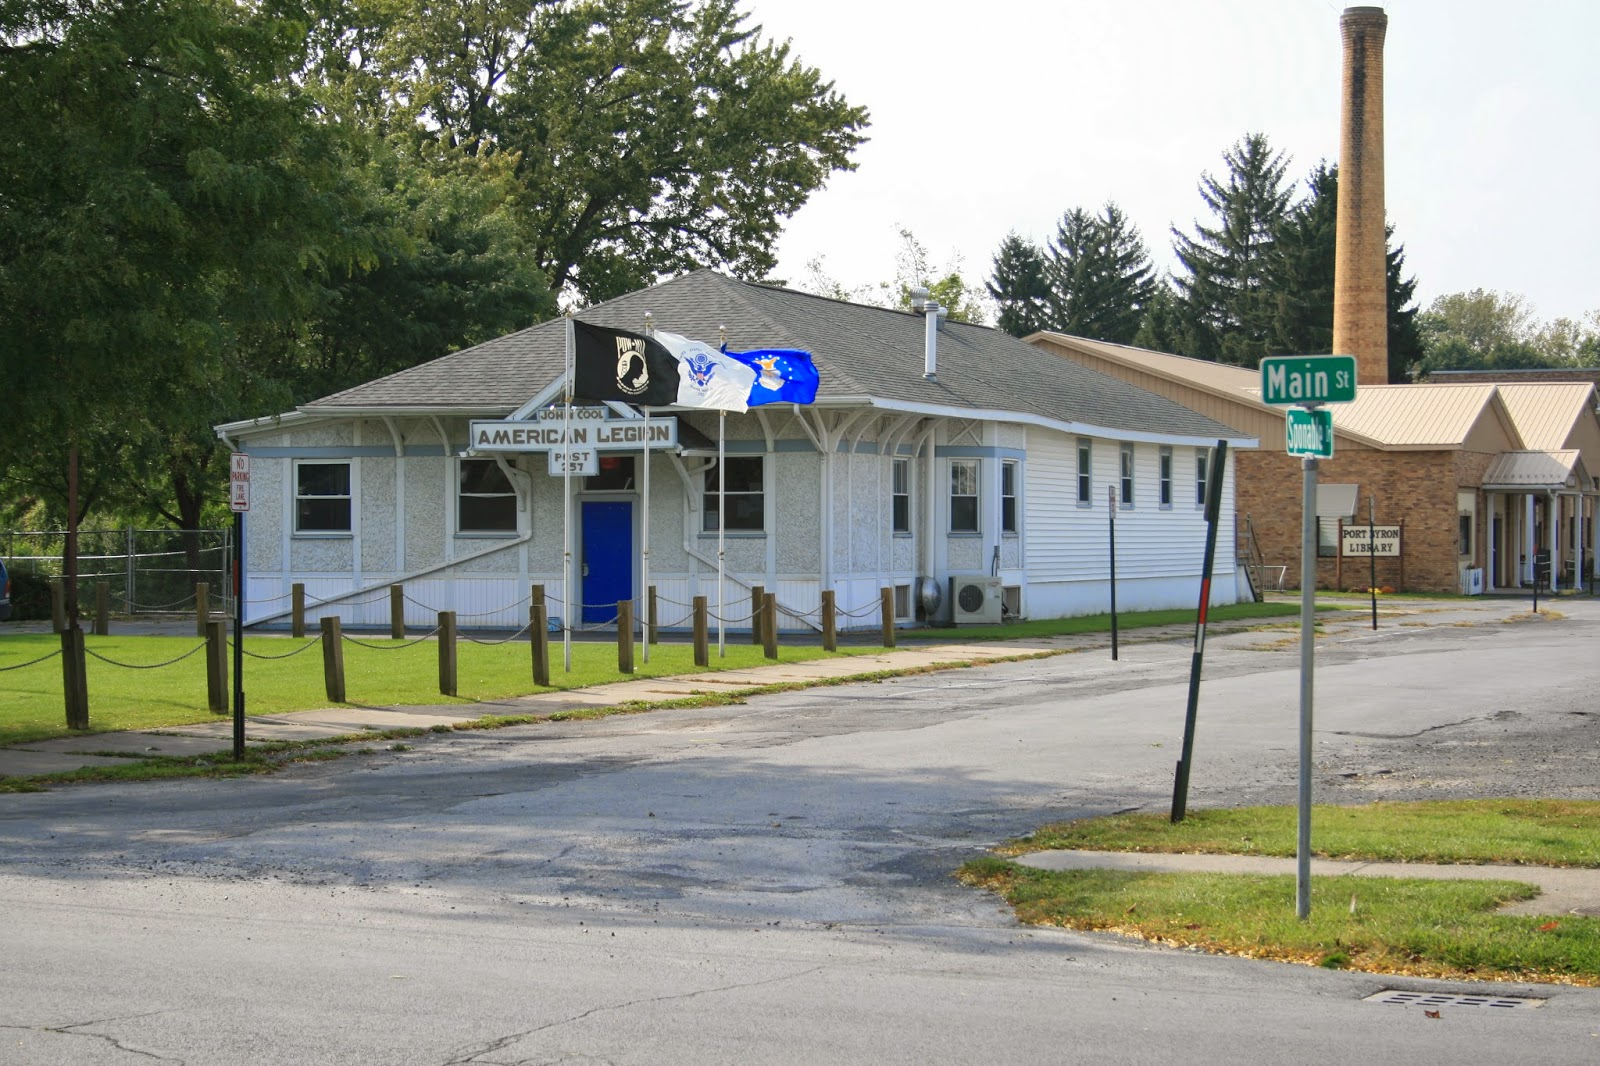 port byron Port byron is a village in cayuga county, new york, united statesthe population was 1,290 at the 2010 census it is in the town of mentz north of auburn the local school is the port byron central school district.